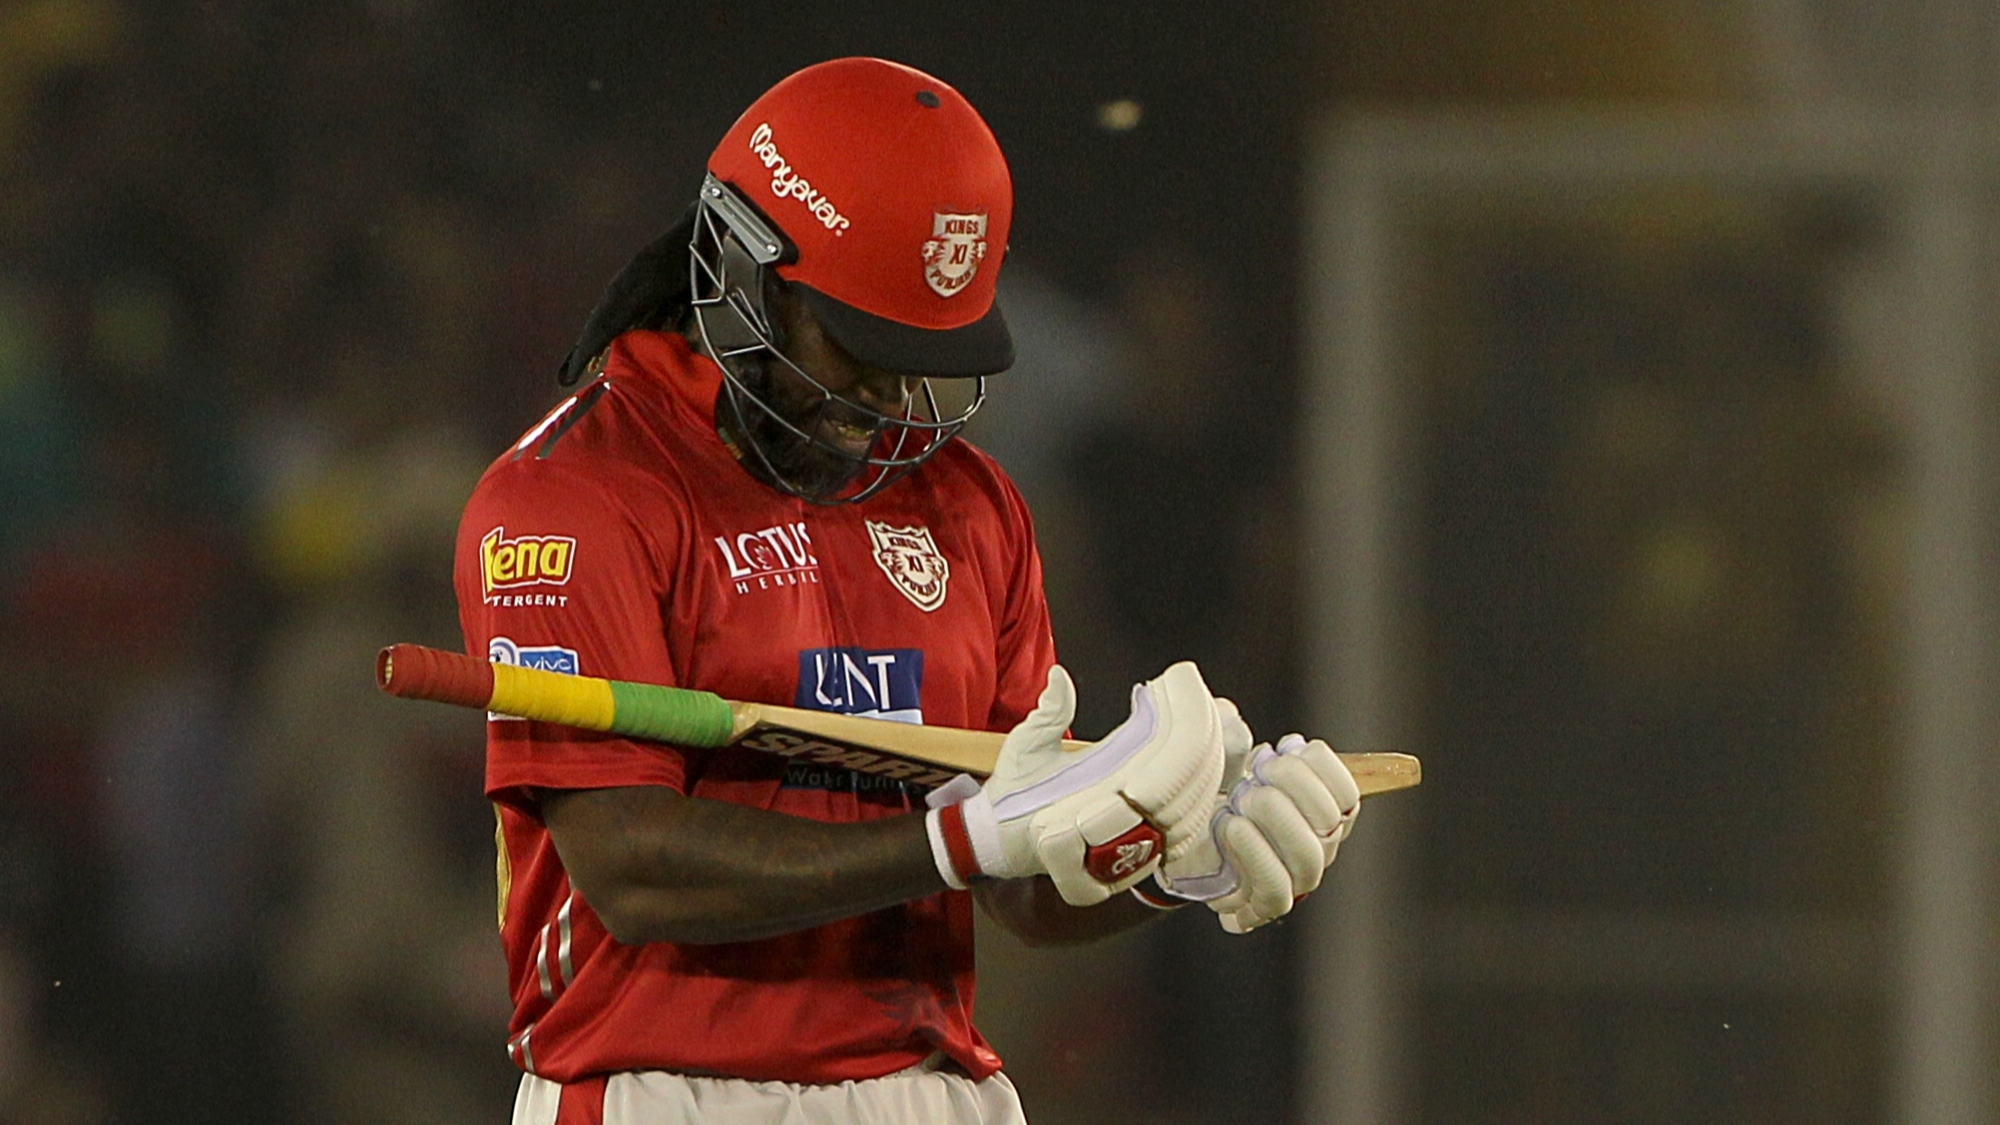 IPL 2018: KXIP vs CSK, Match 12: Twitter goes berserk over Chris Gayle's quickfire fifty